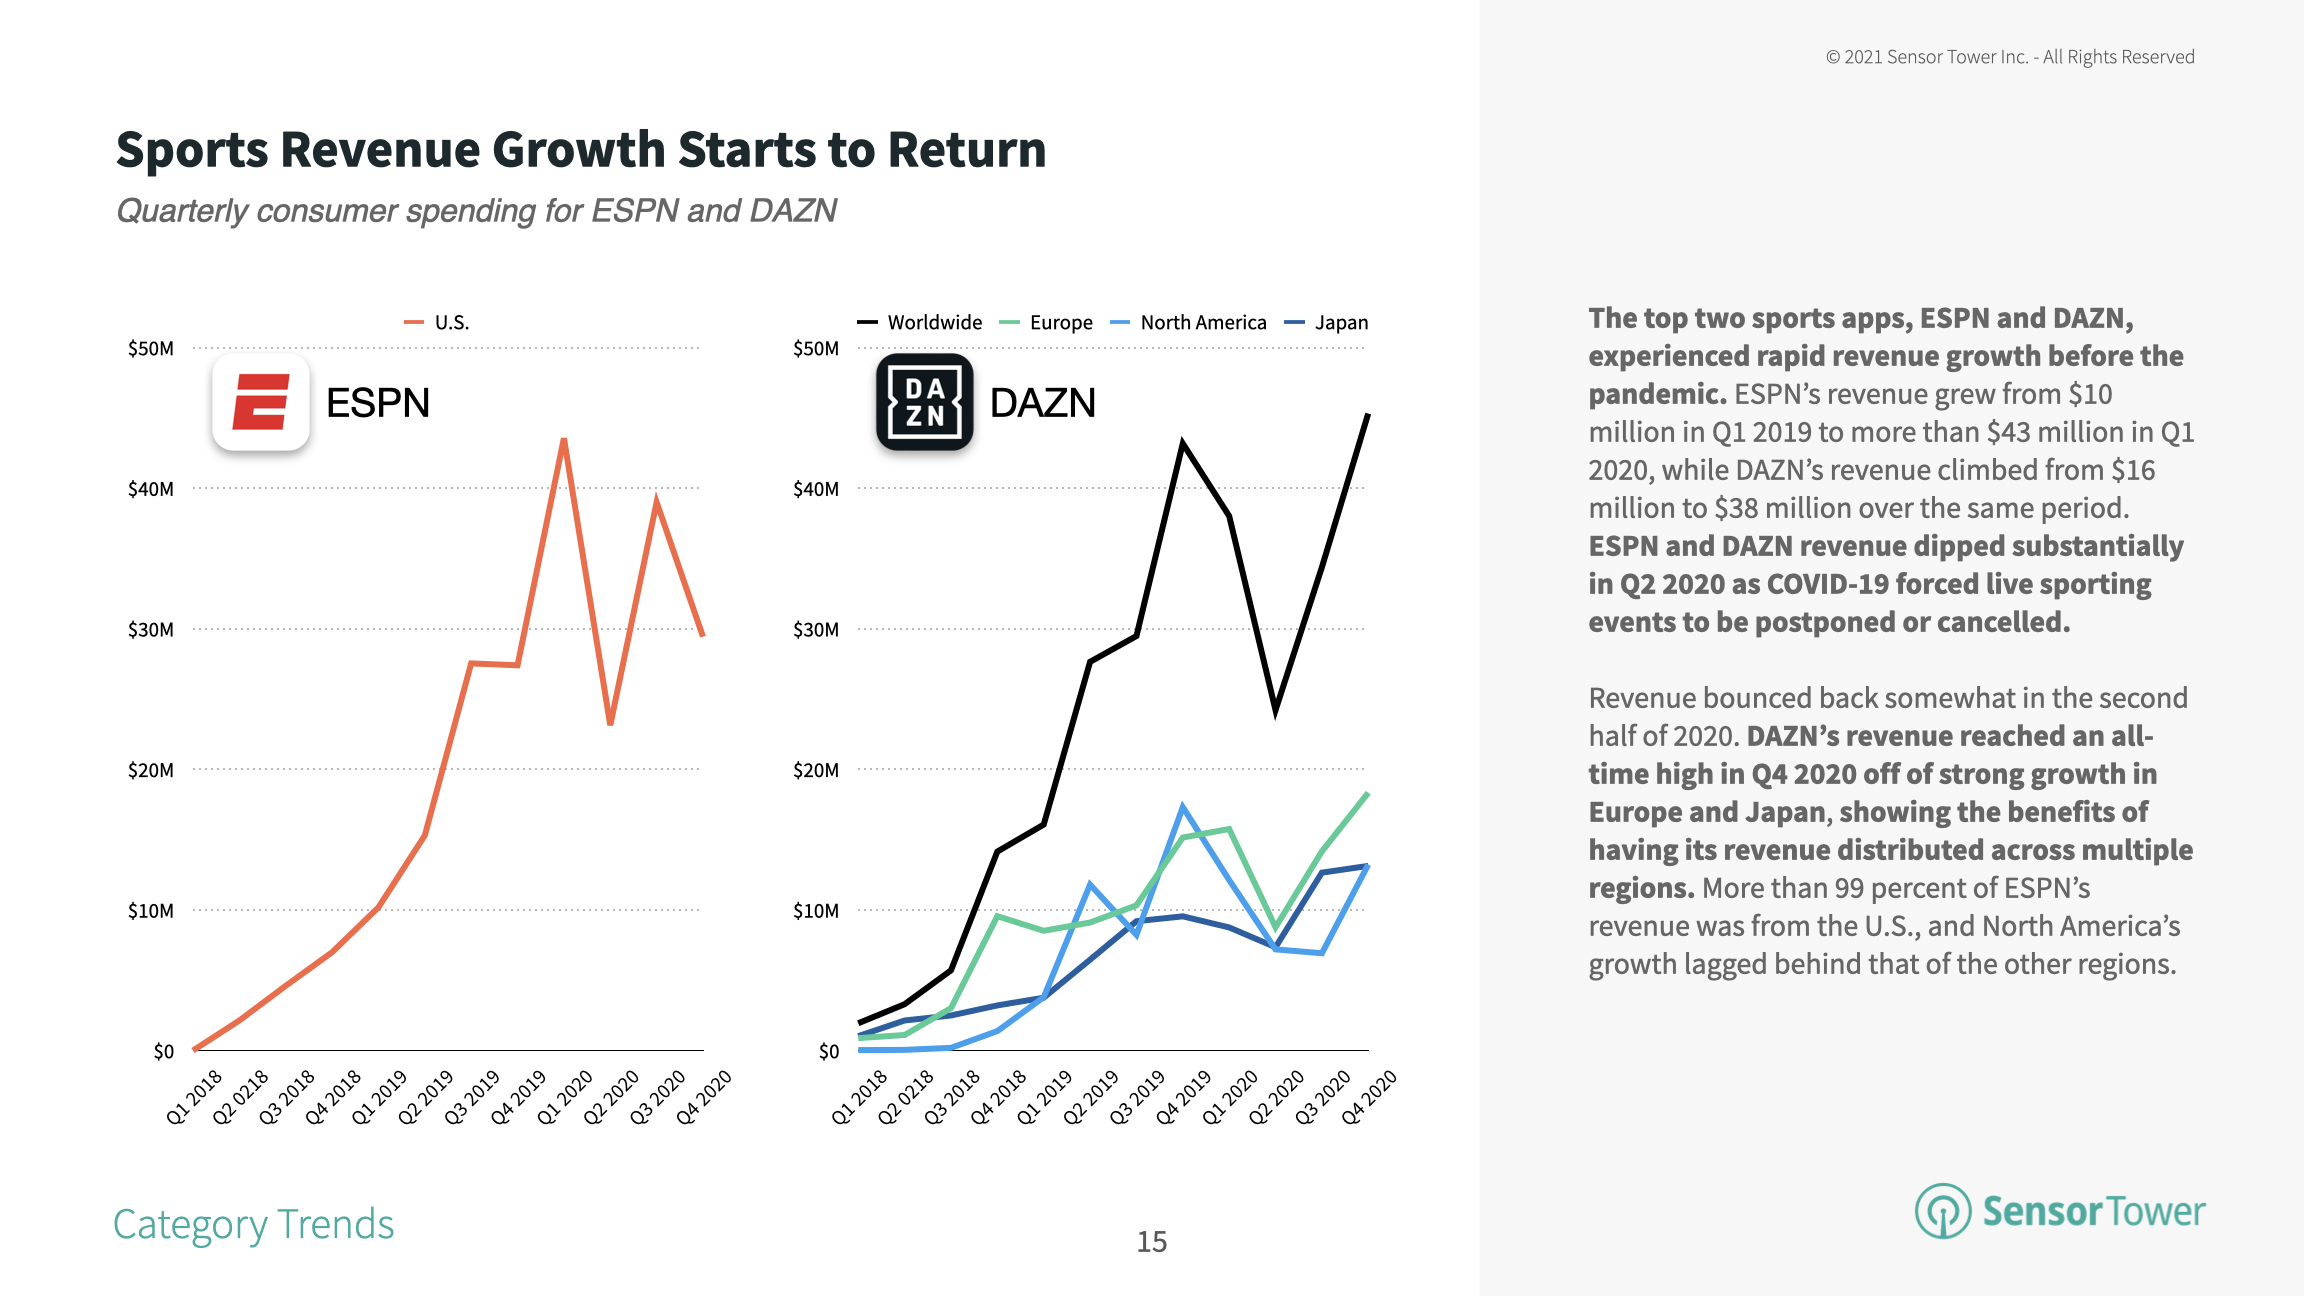 The top sports app DAZN is experiencing a rebound thanks to growth in Europe and Japan.